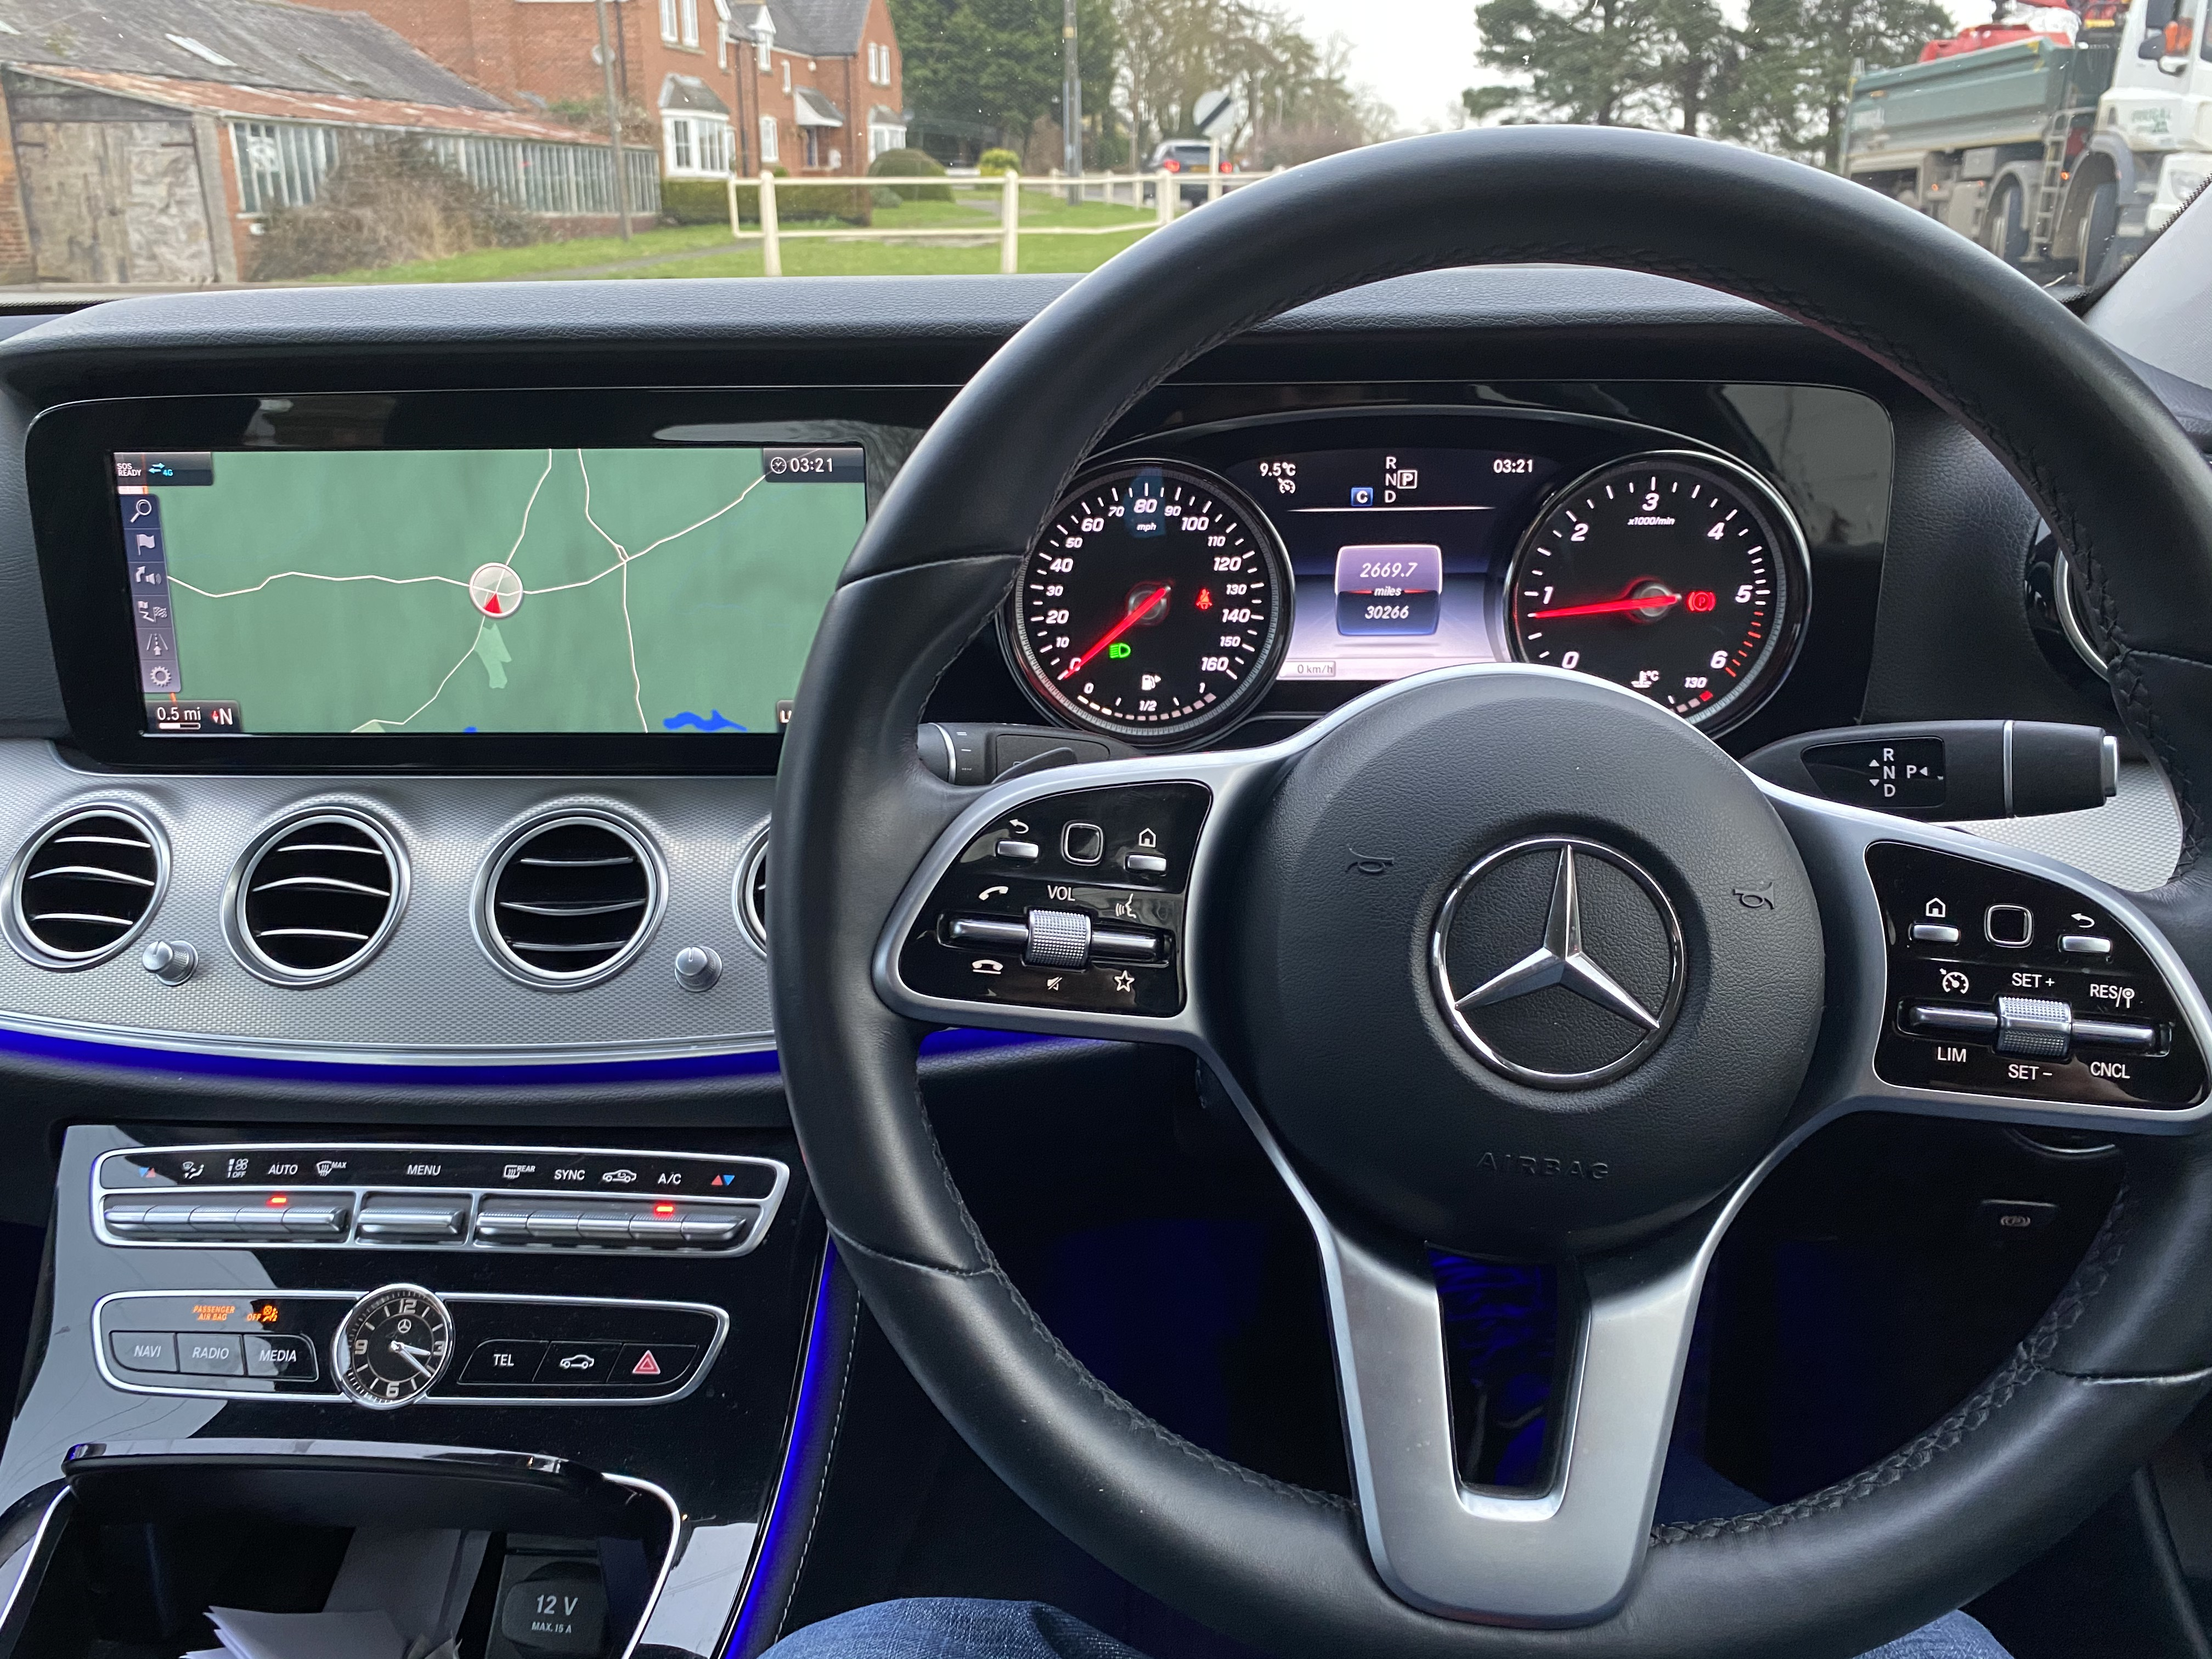 """ON SALE MERCEDES E220d """"SPECIAL EQUIPMENT"""" 9G-TRONIC (2019 MODEL) *GREAT SPEC*SAT NAV - LEATHER - Image 8 of 26"""